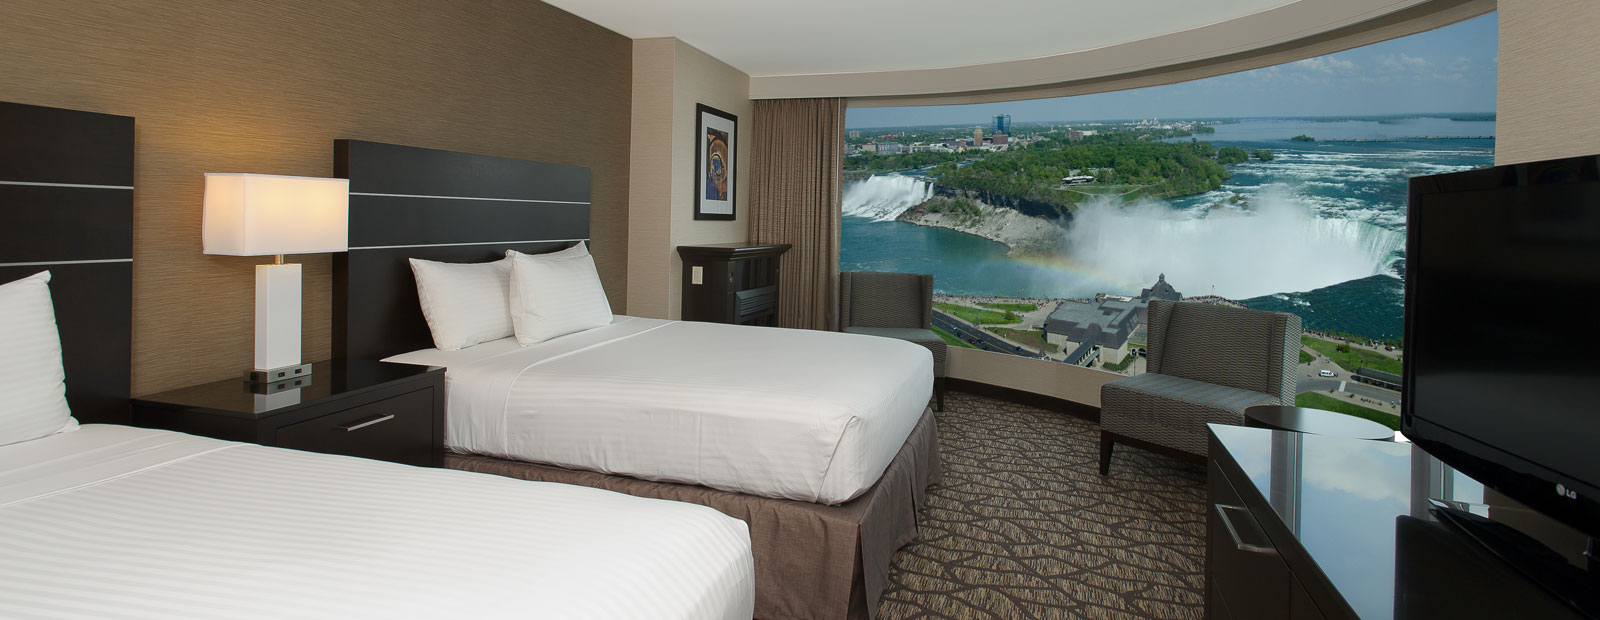 Exterior - Embassy Suites by Hilton Niagara Falls - Fallsview Hotel, Canada